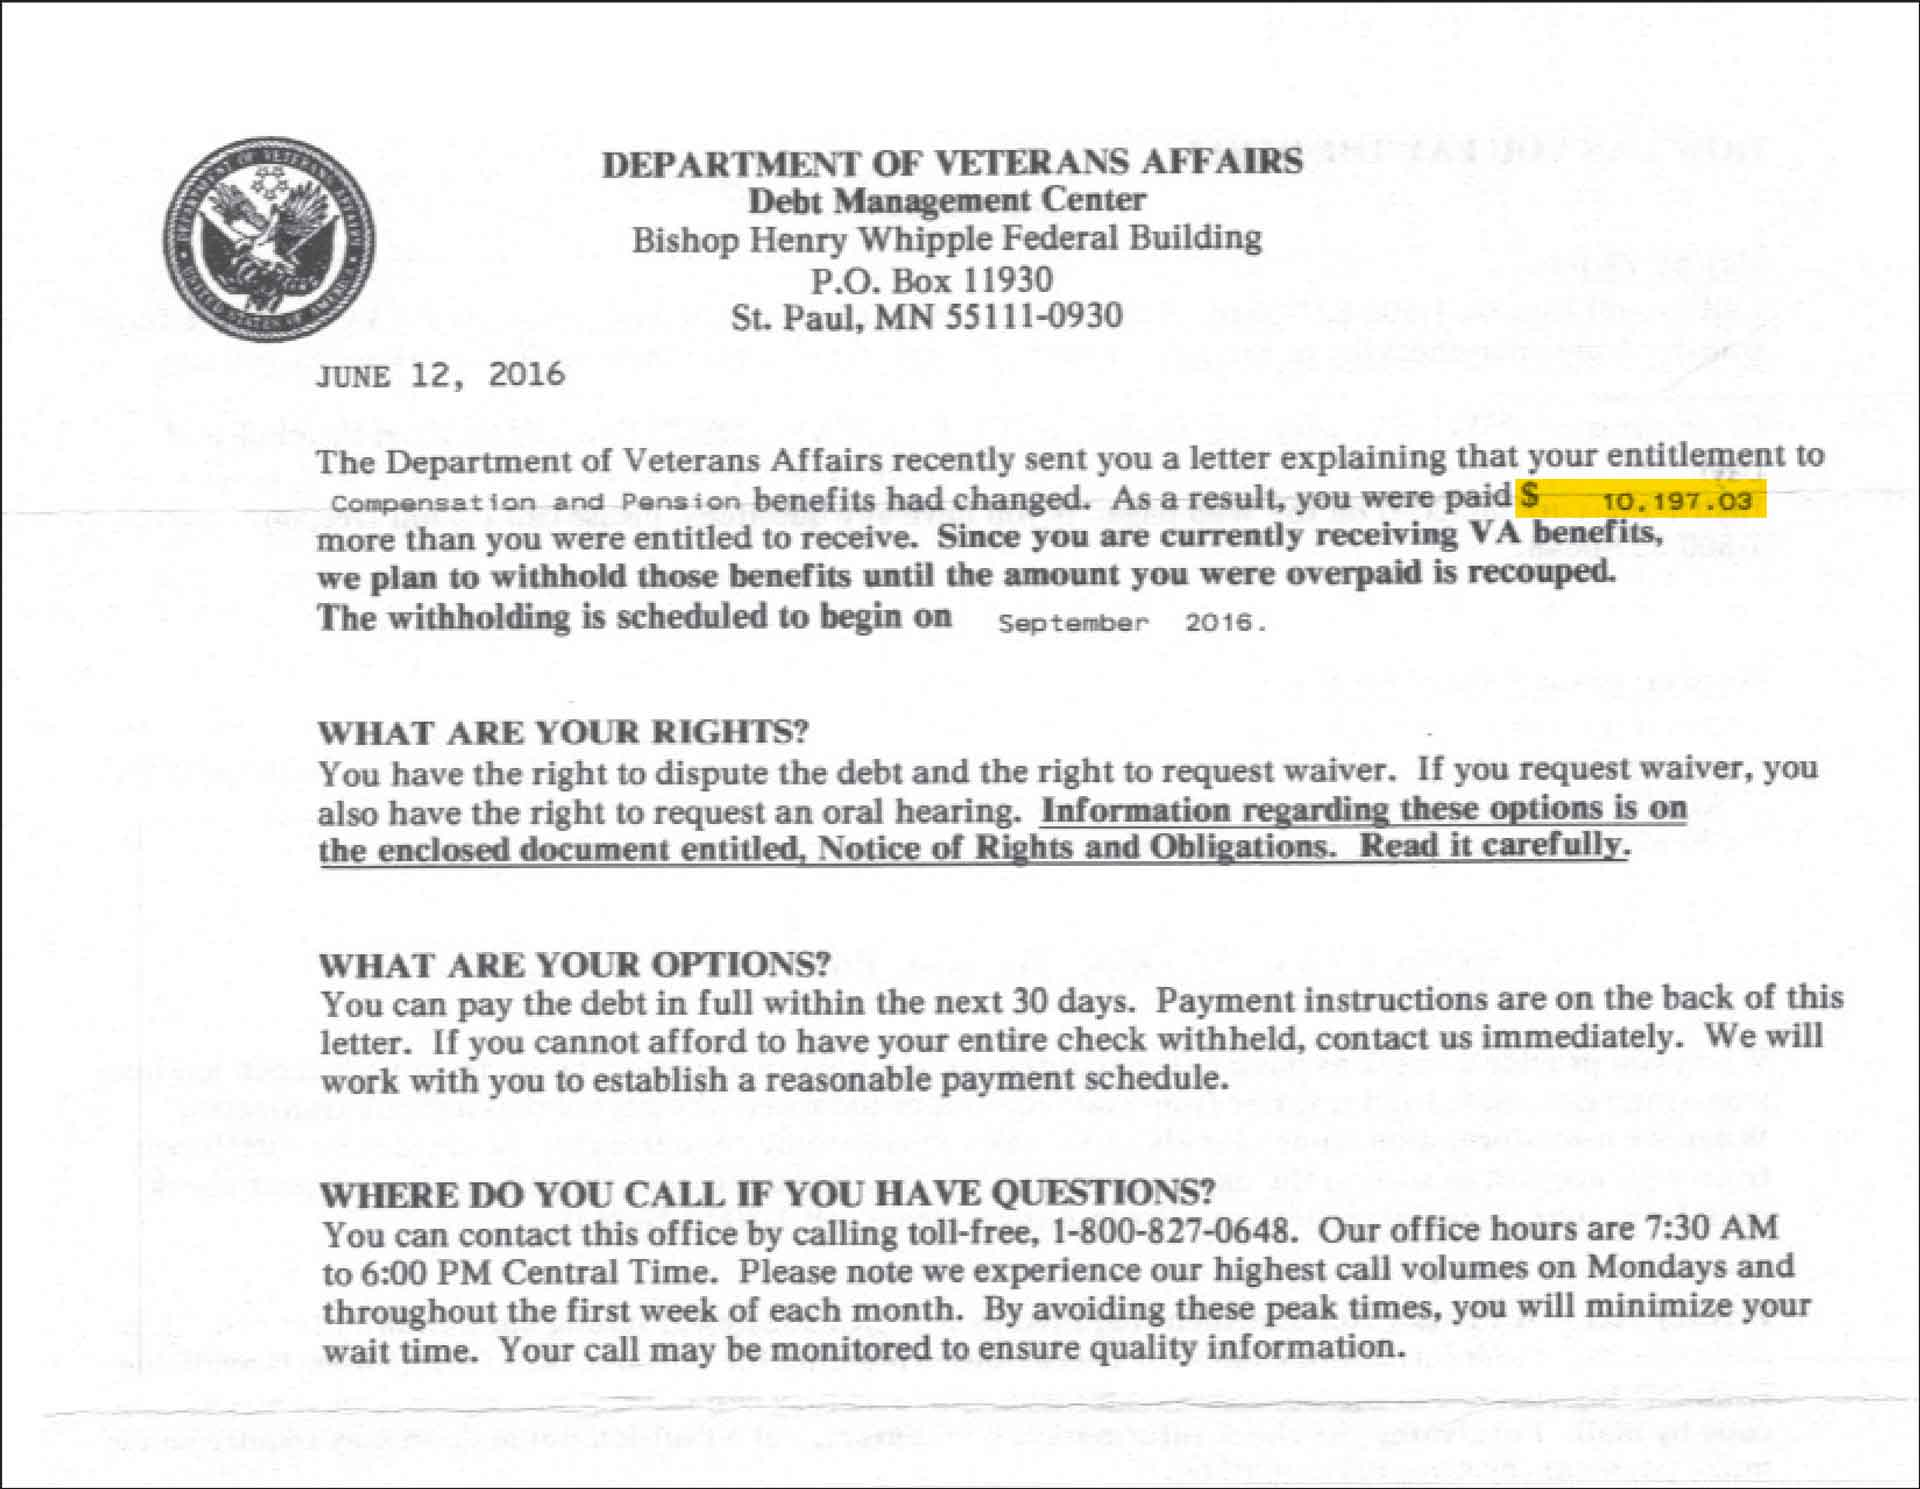 Gi bill eligibility letter how to format cover letter for Va nexus letter template